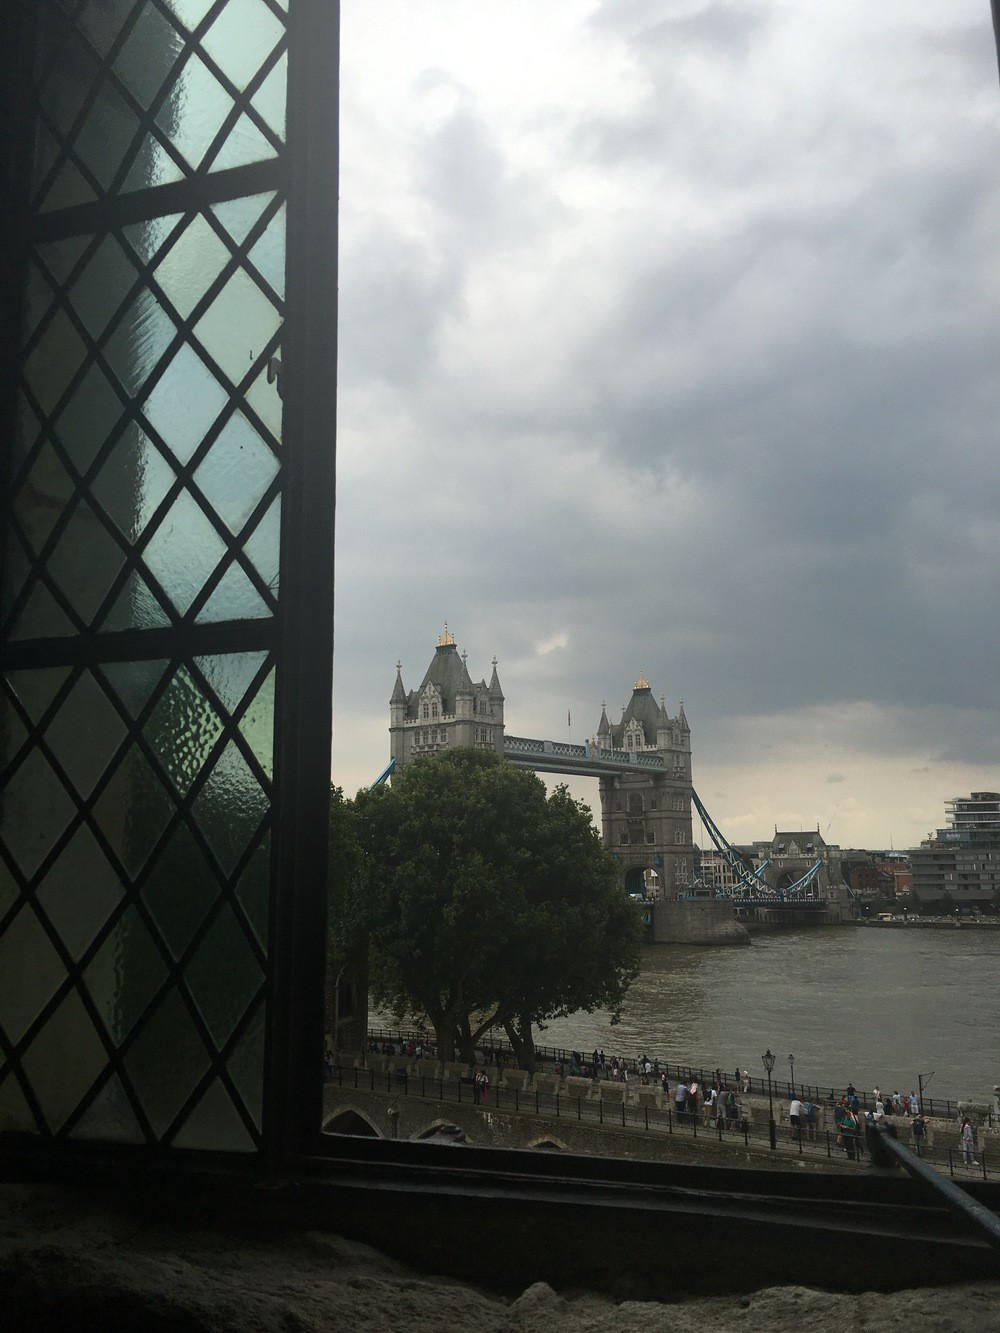 Tower Bridge as seen from a window in the White Tower in the Tower of London